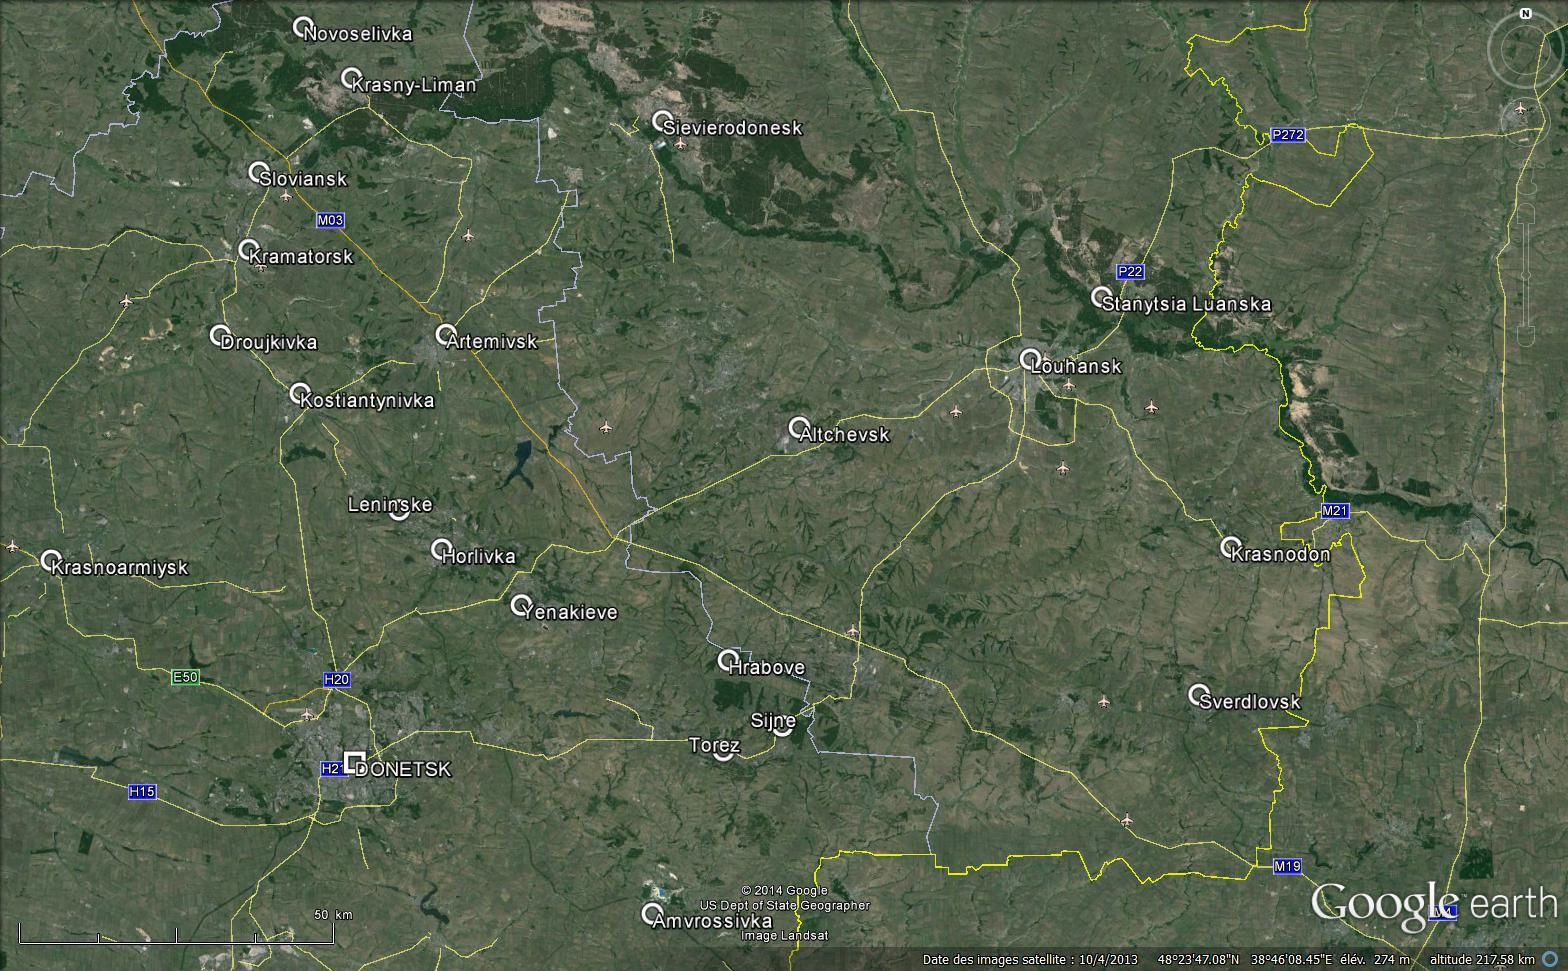 Le Donbass vu sur Google Earth .